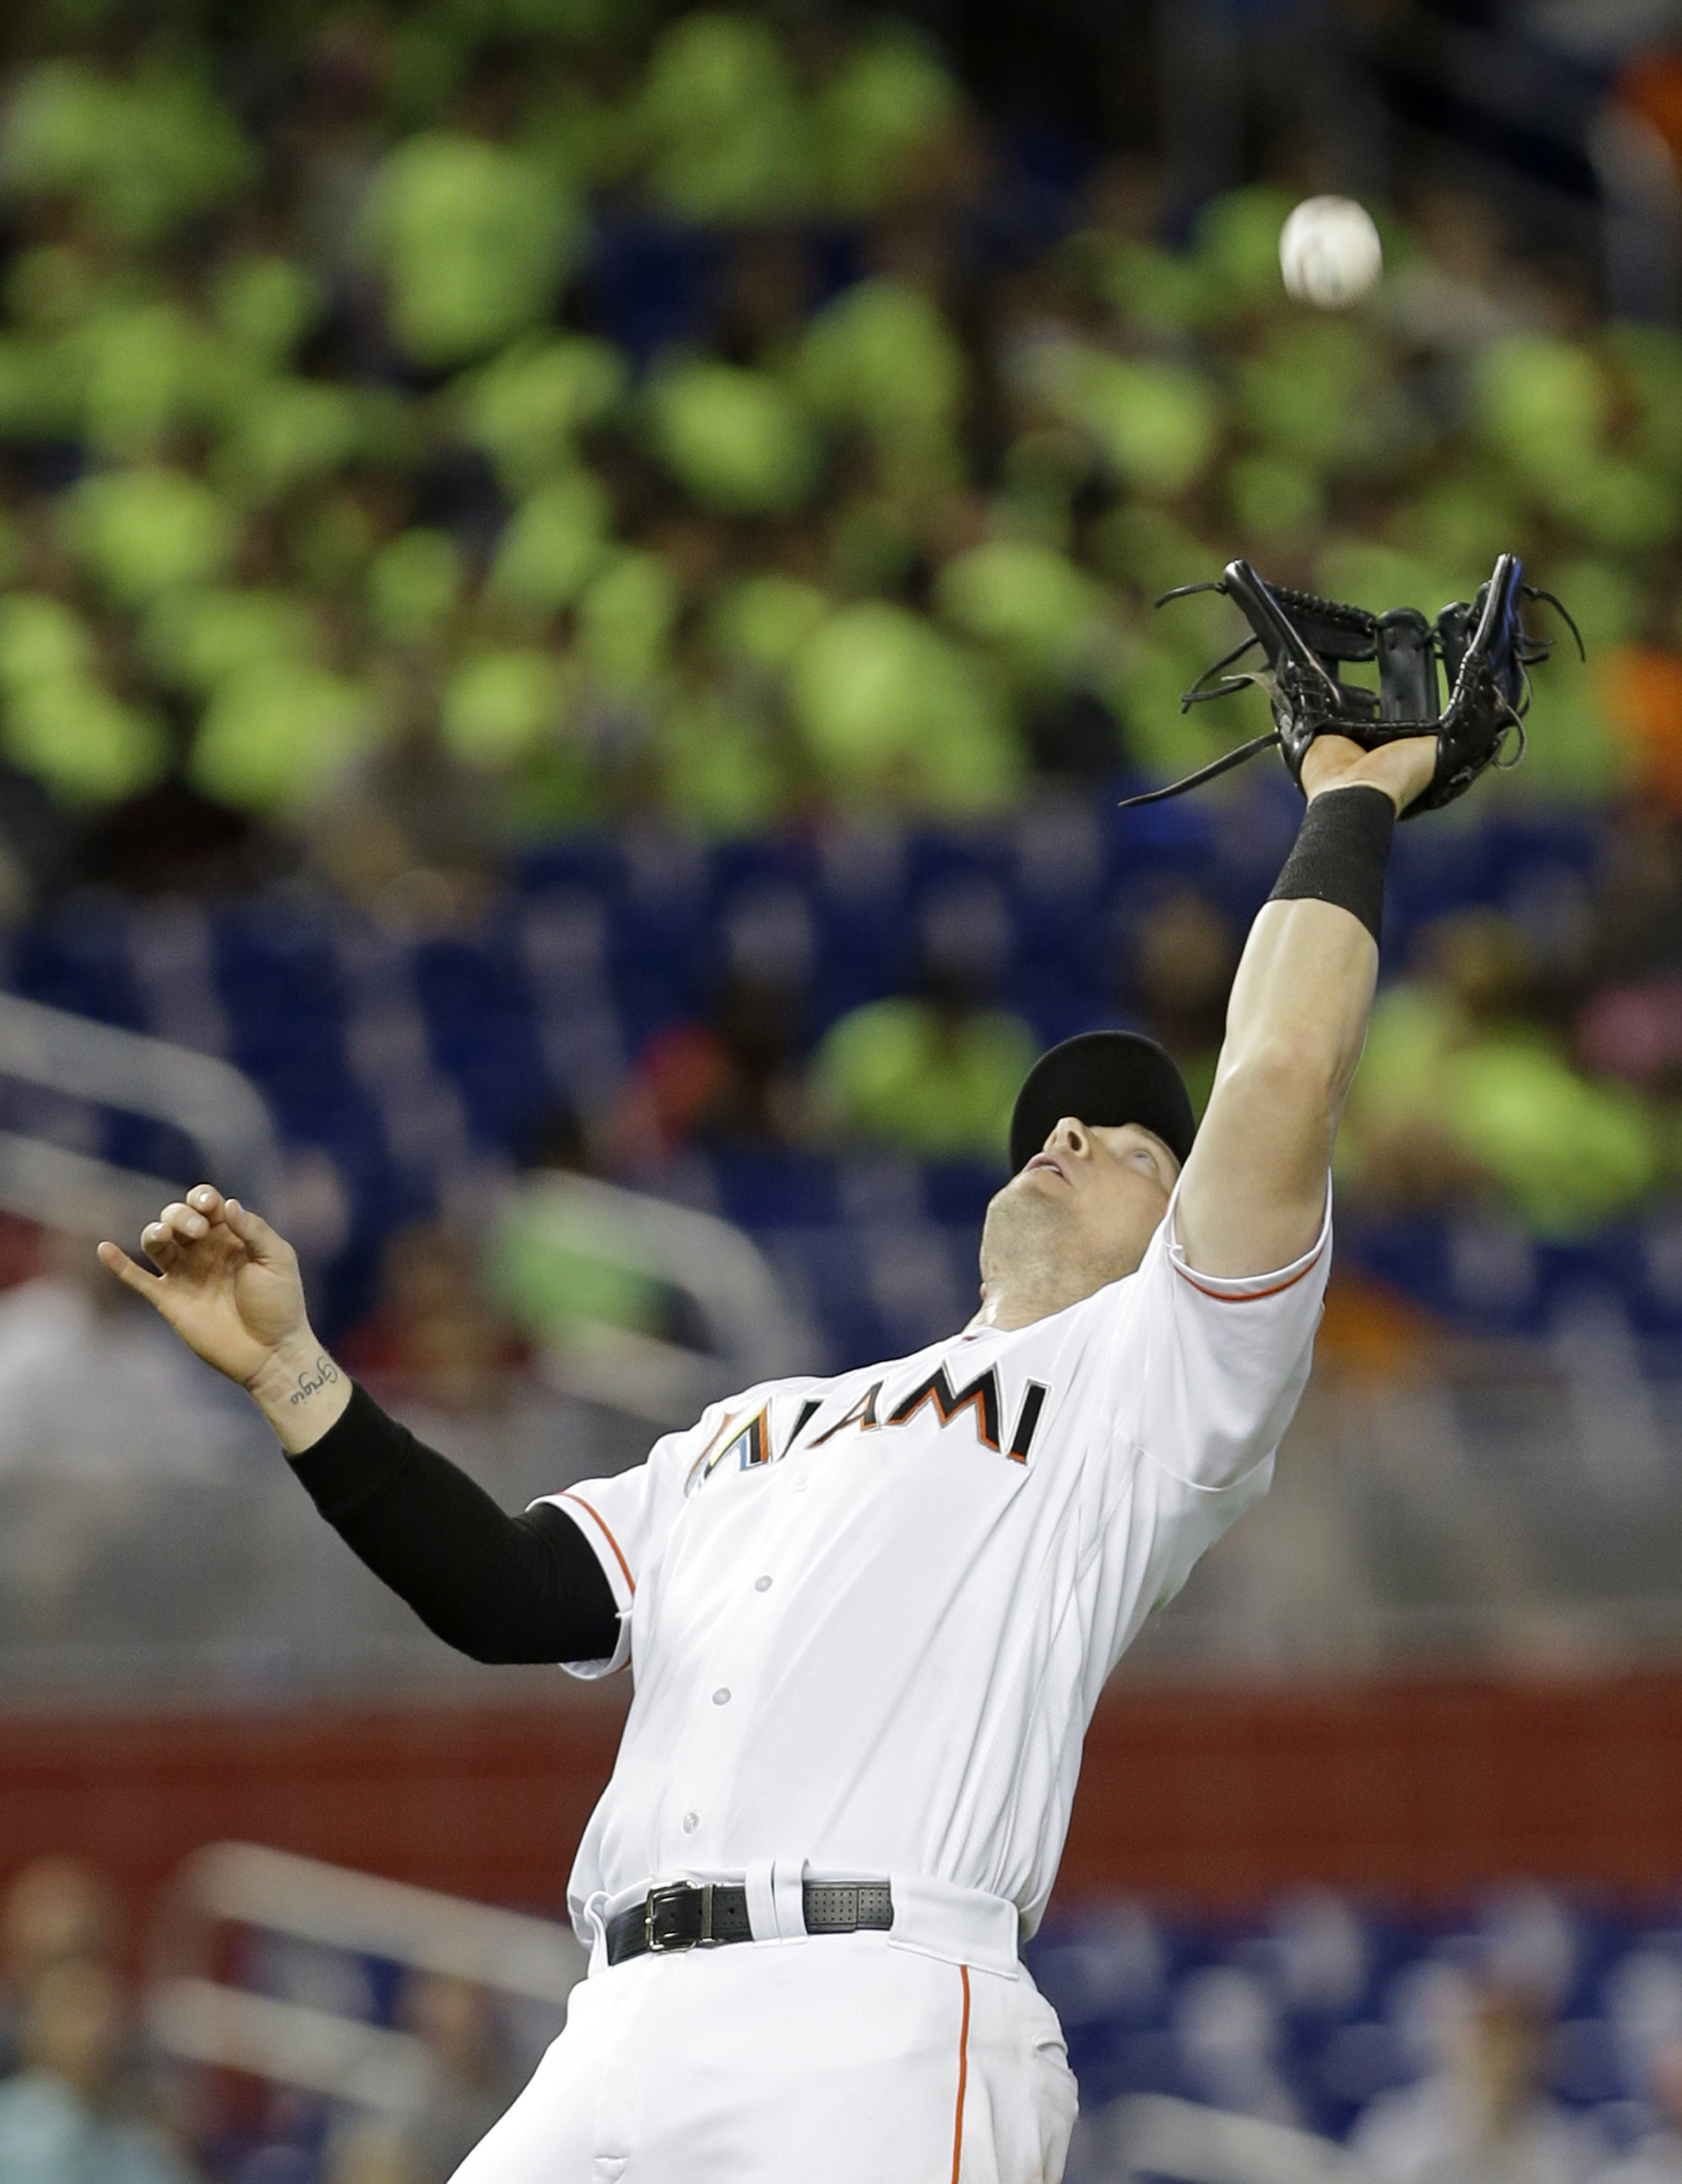 Miami Marlins second baseman Derek Dietrich catches a pop up fly ball by Atlanta Braves' Chase d'Arnaud in the second inning of a baseball game, Wednesday, June 22, 2016, in Miami. (AP Photo/Alan Diaz)